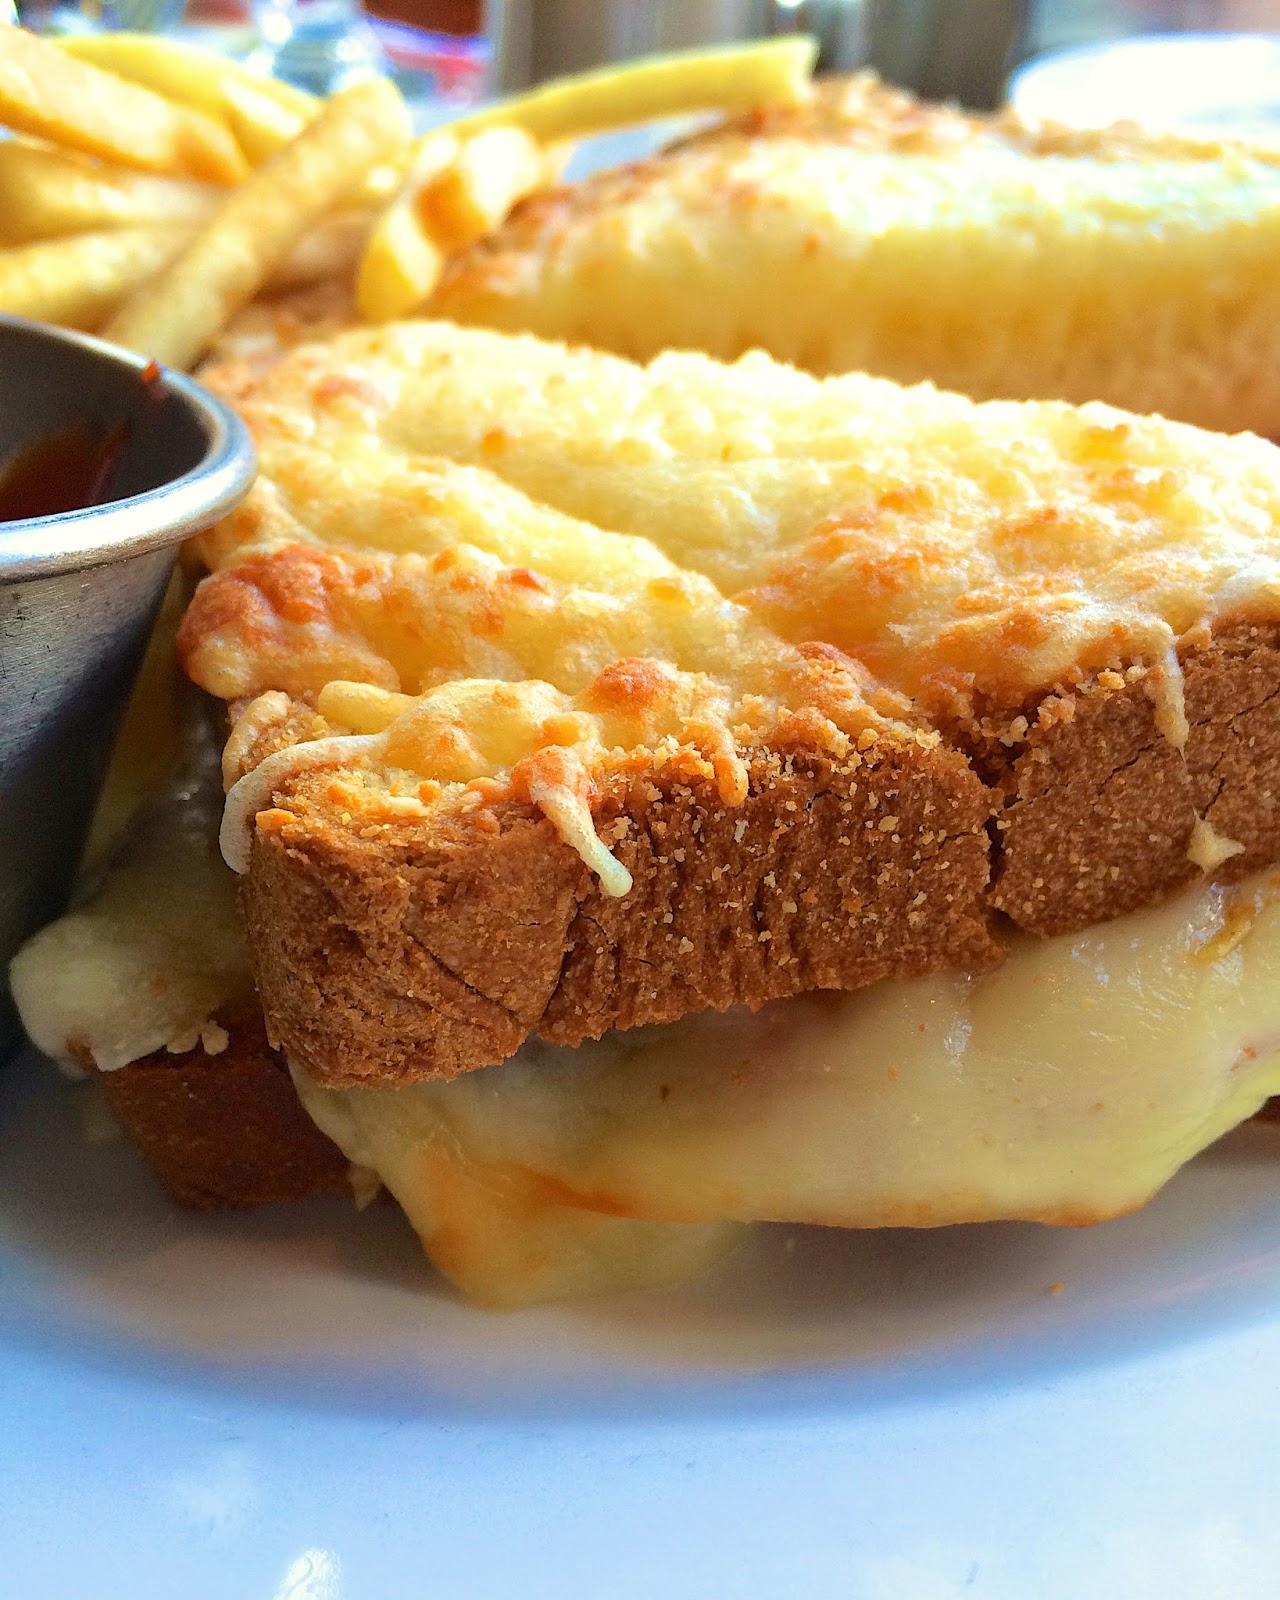 Croque Monsieur - Les Chefs De France - Epcot - Walt Disney World